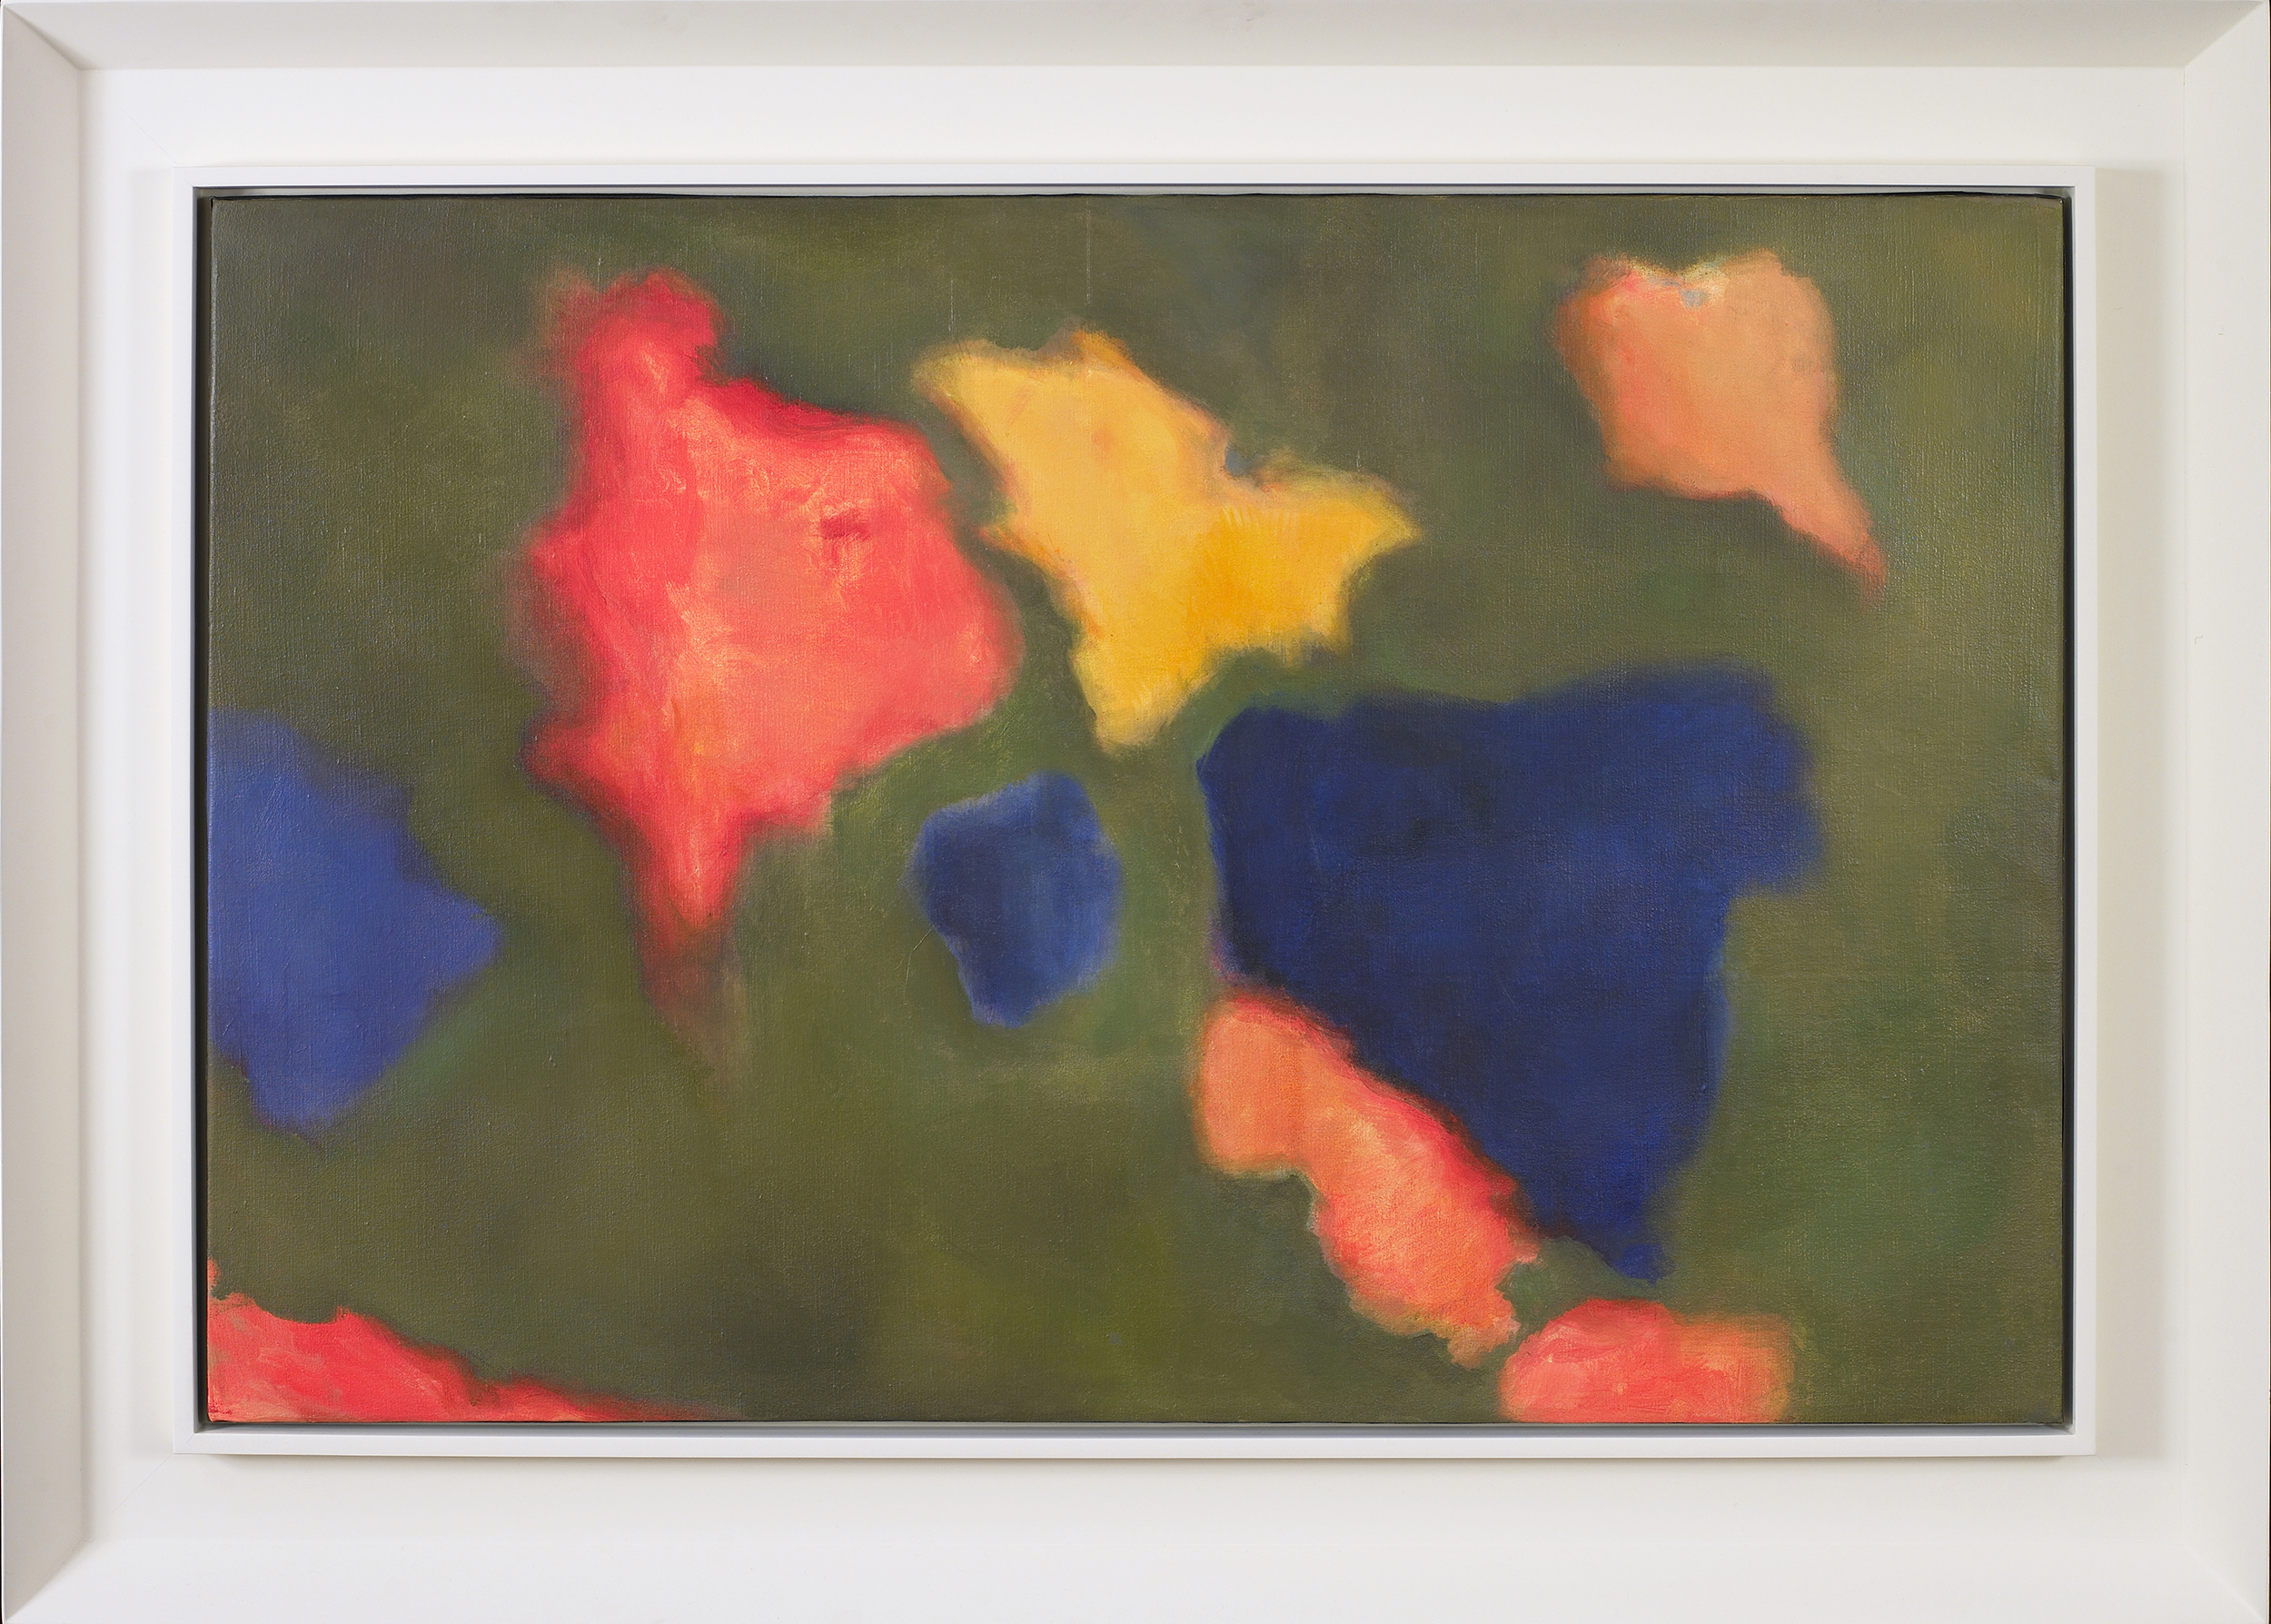 Floating World,   1974, Oil on canvas, 24 x 36 inches